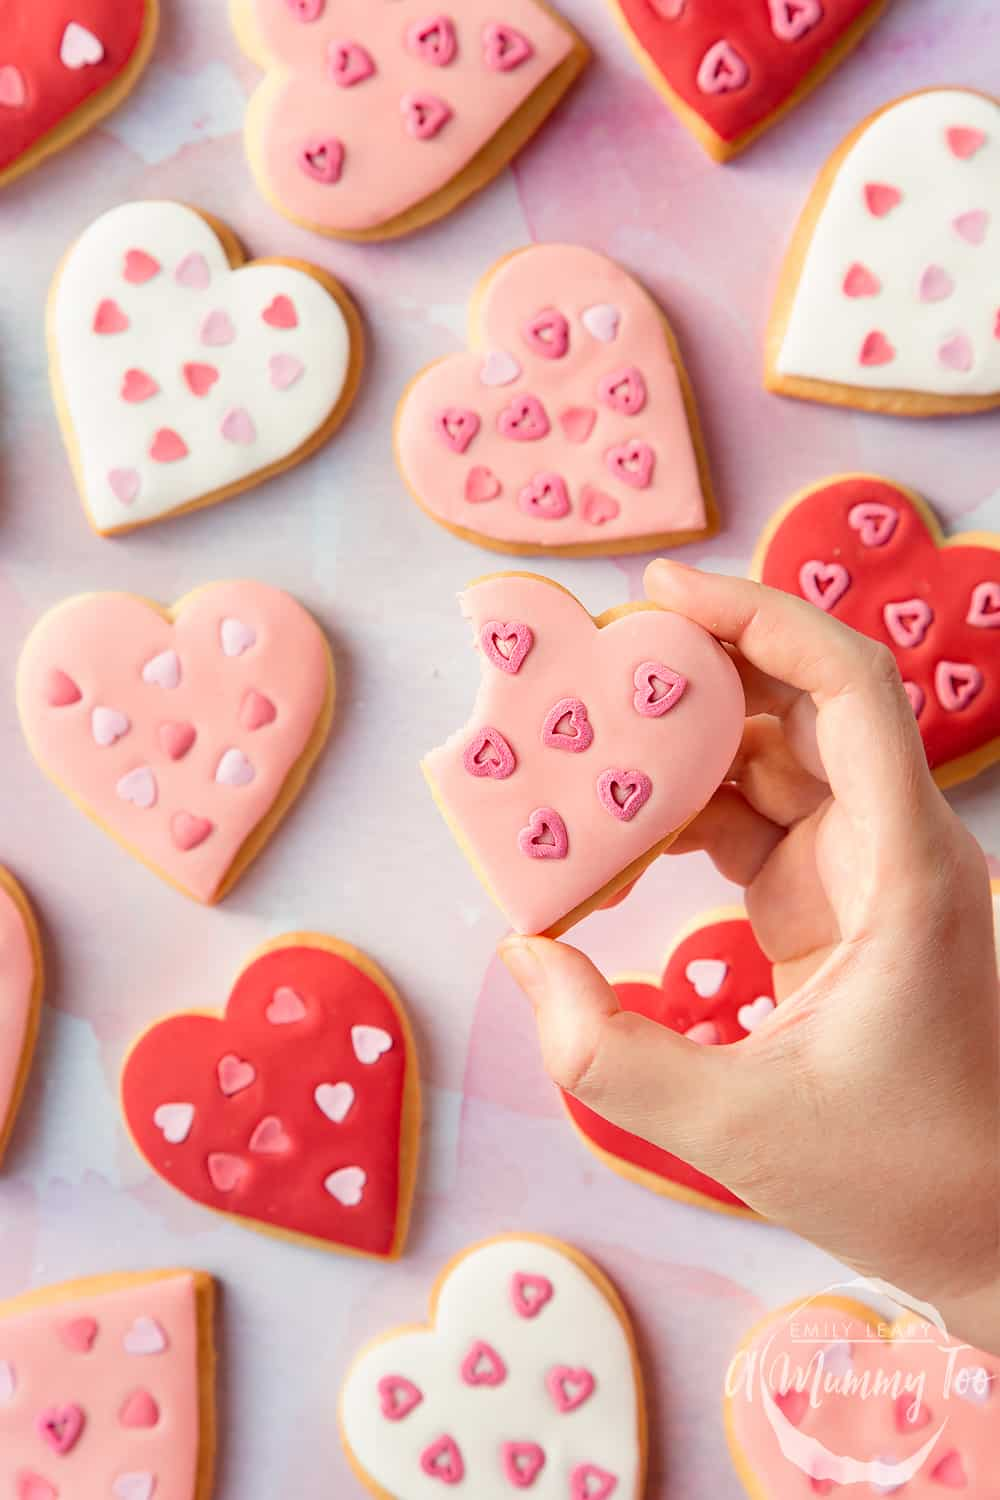 Overhead shot of a hand holding a Heart biscuit for Valentine's Day with a mummy too logo in the lower-right corner